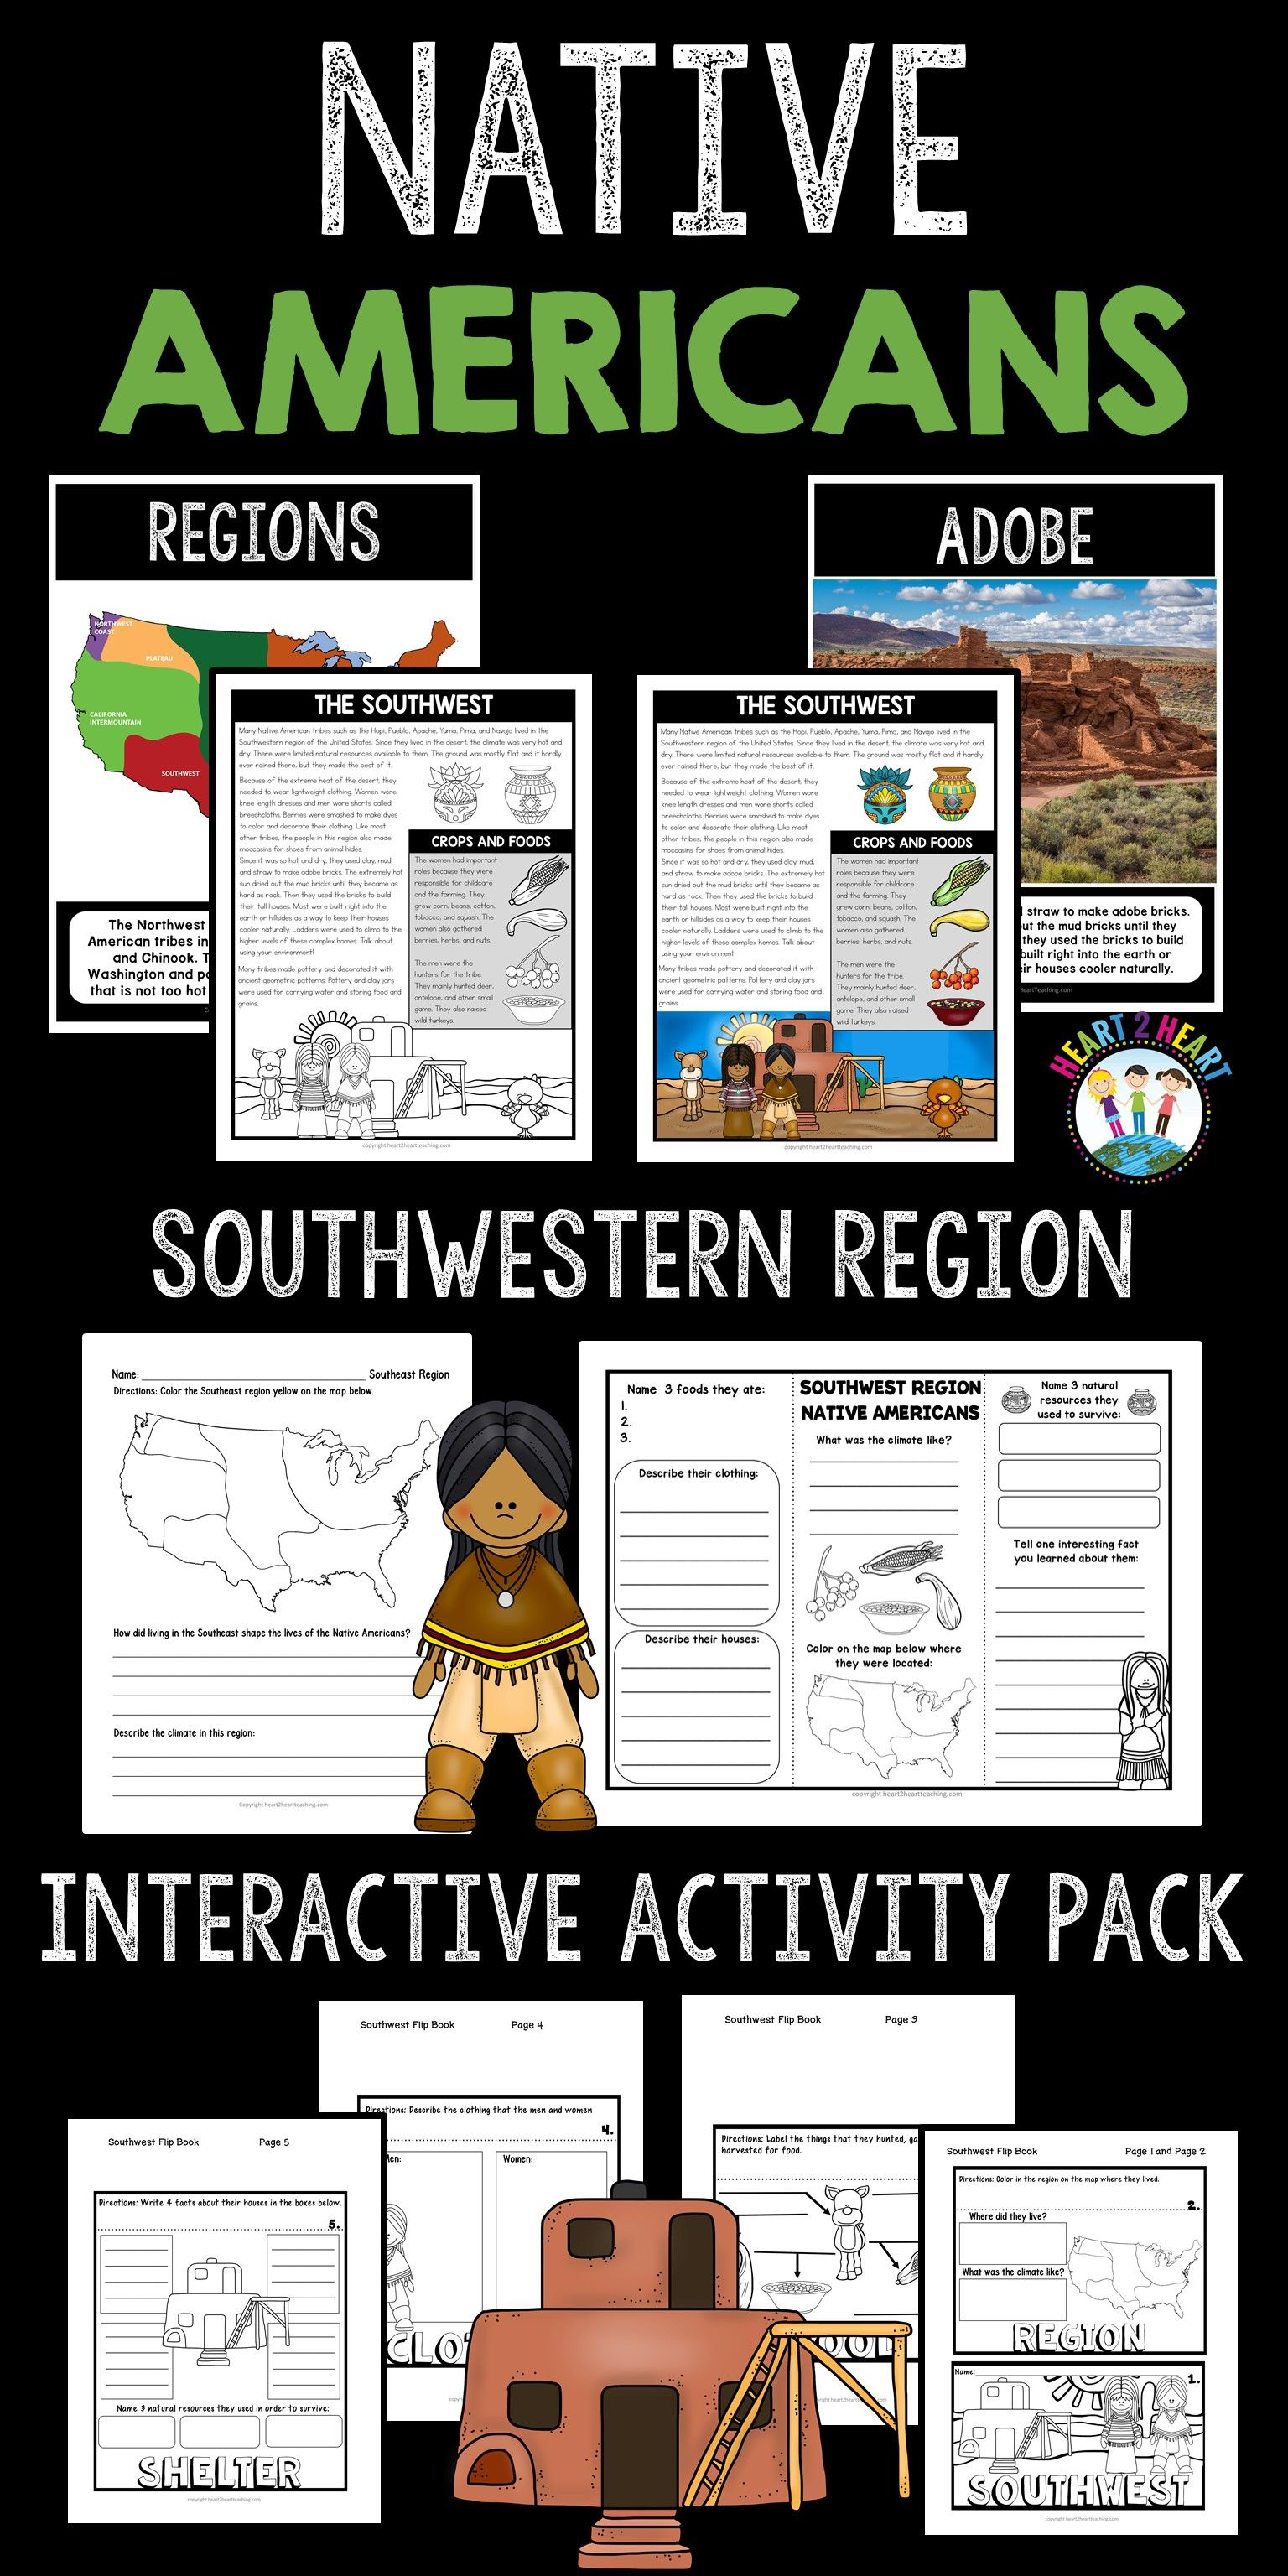 Native Americans That Lived In The Southwest Region